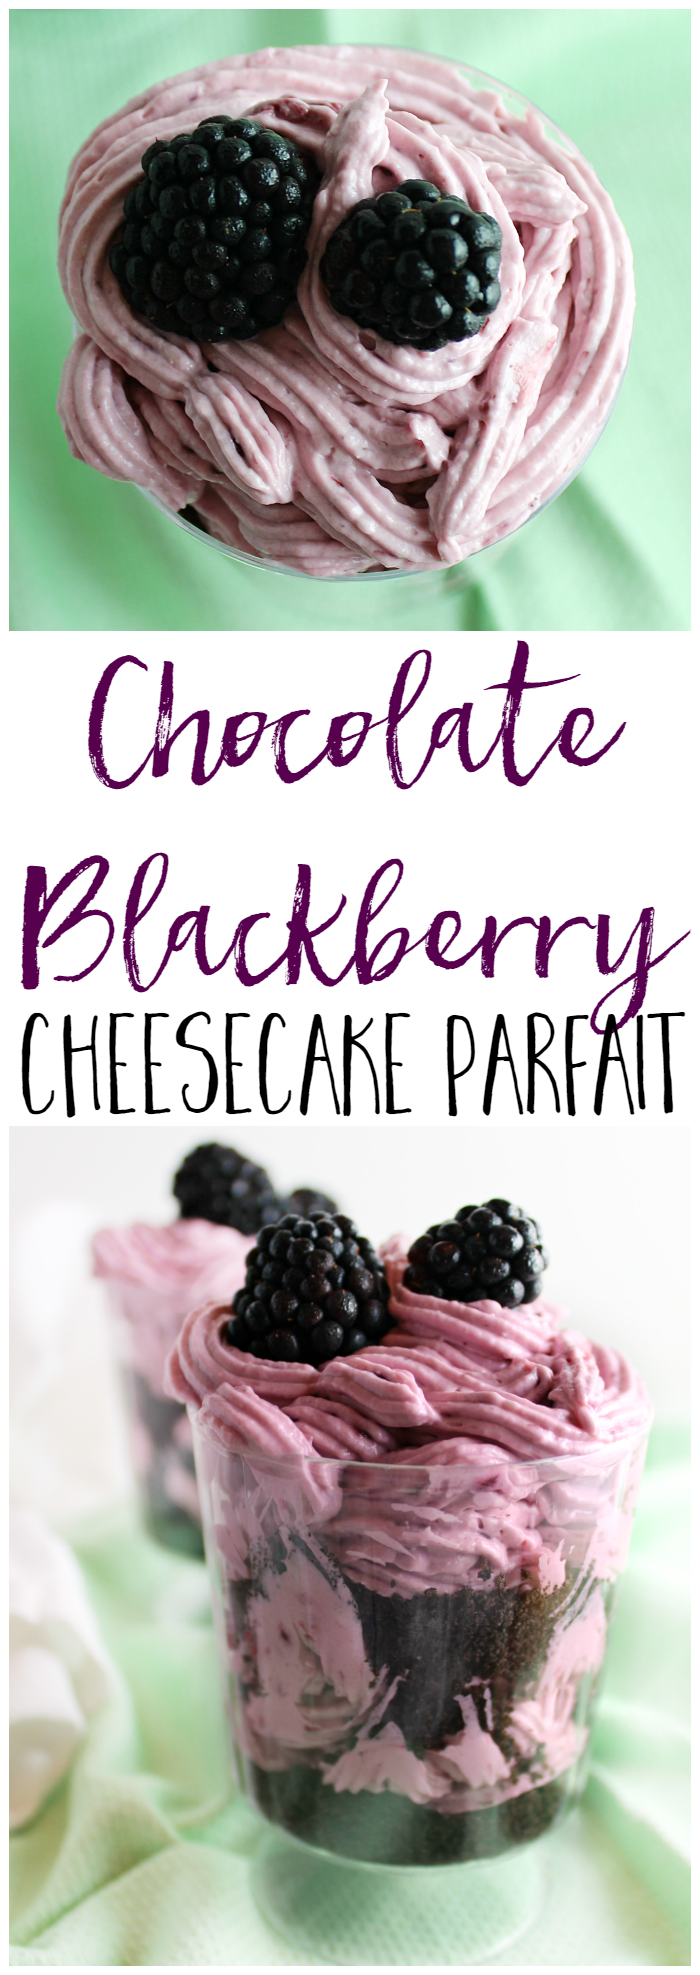 These Chocolate Blackberry Cheesecake Parfaits are perfect for any party! Great for black and purple themed!